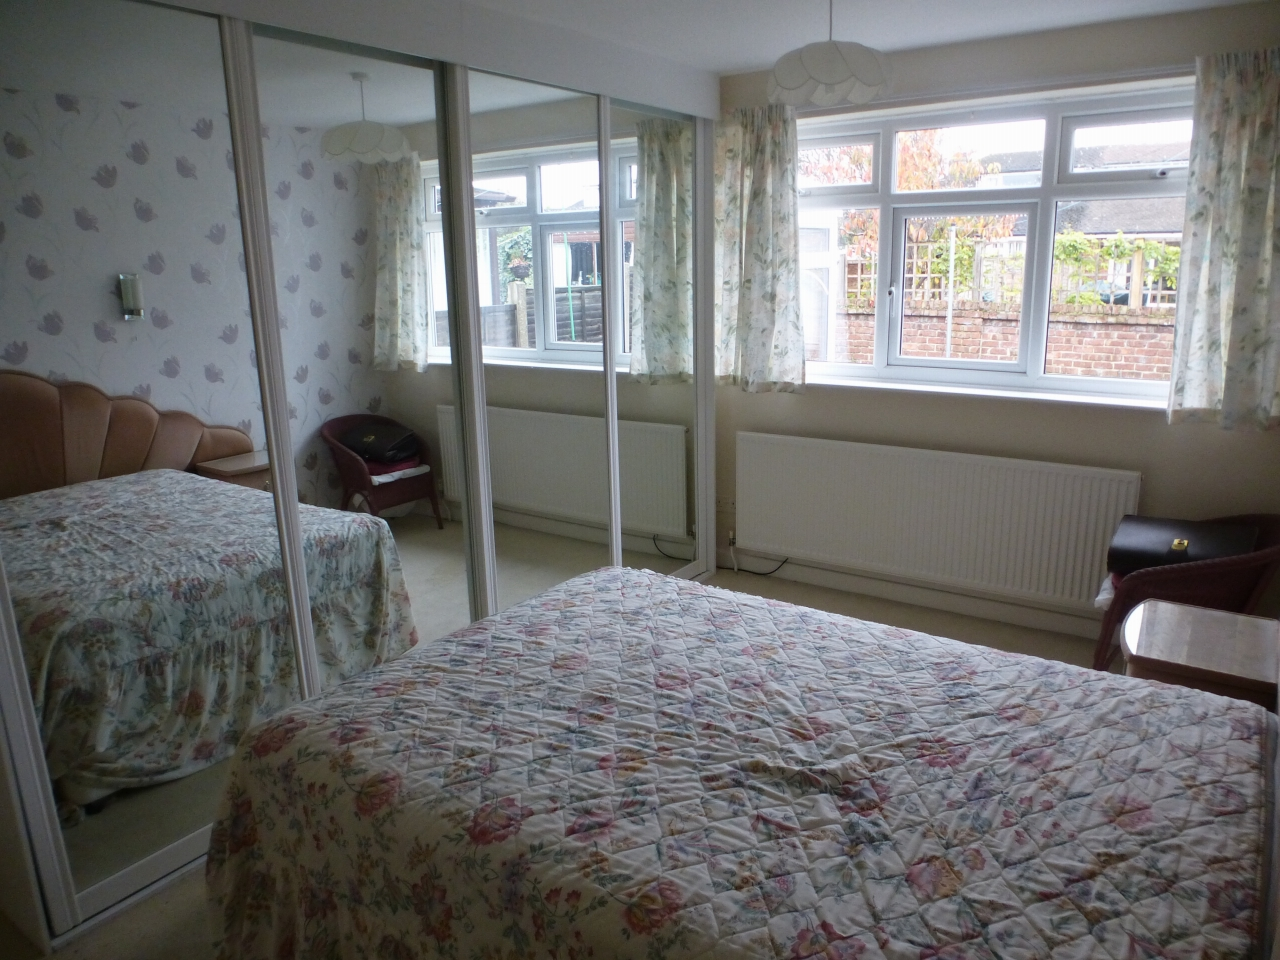 Image 2 of 2 of BEDROOM 1, on Accommodation Comprising for